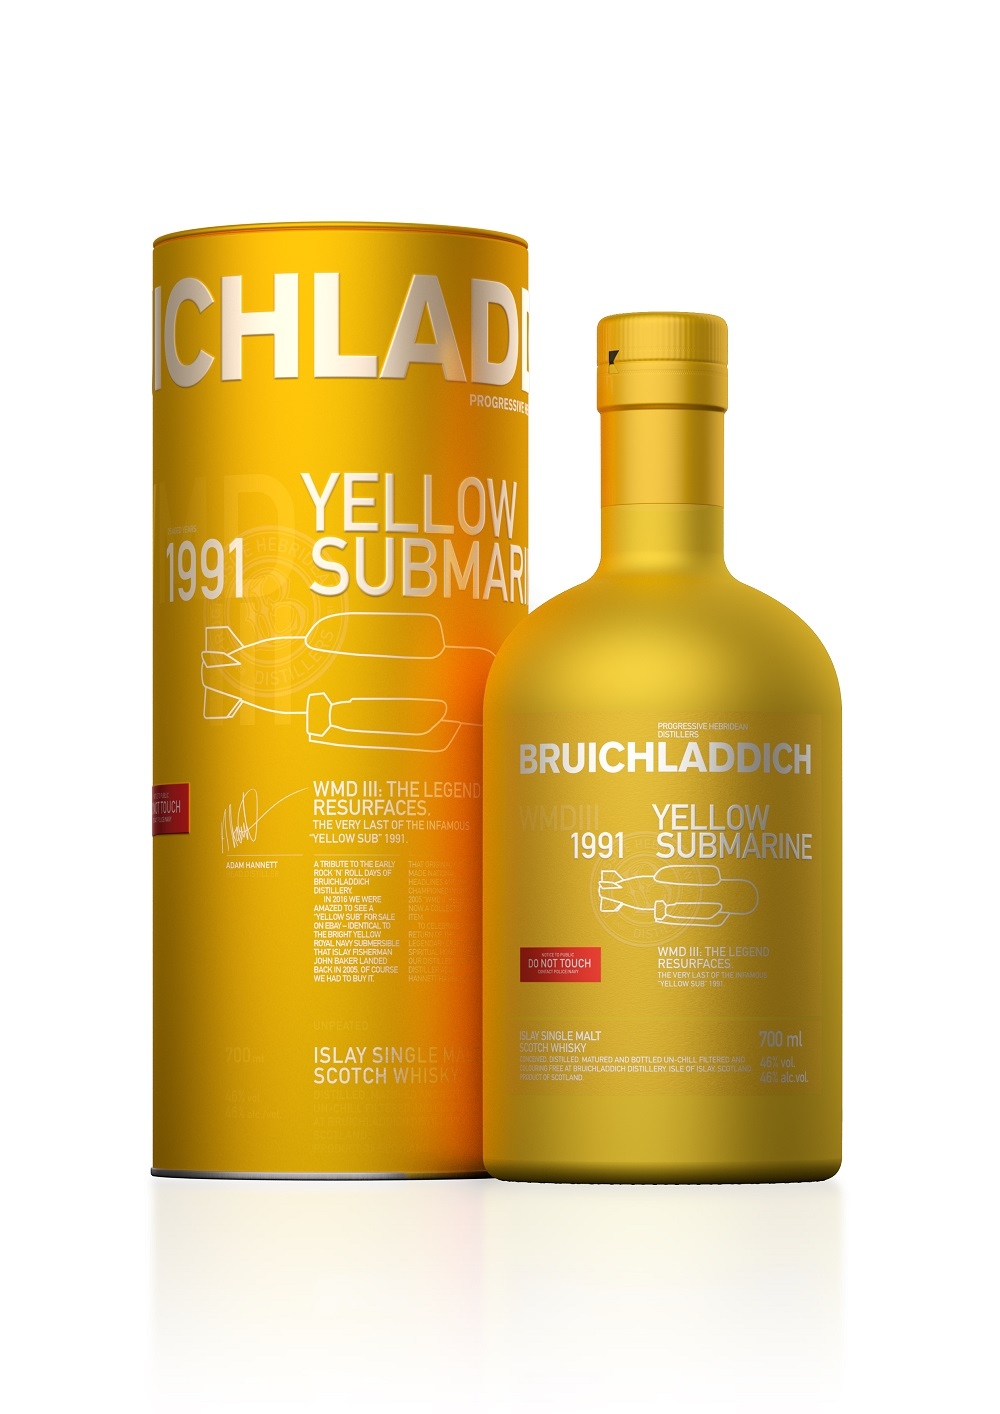 bruichladdich-yellow-submarine-wmdiii-d1991-r2018-700-blackbg-floor.jpg